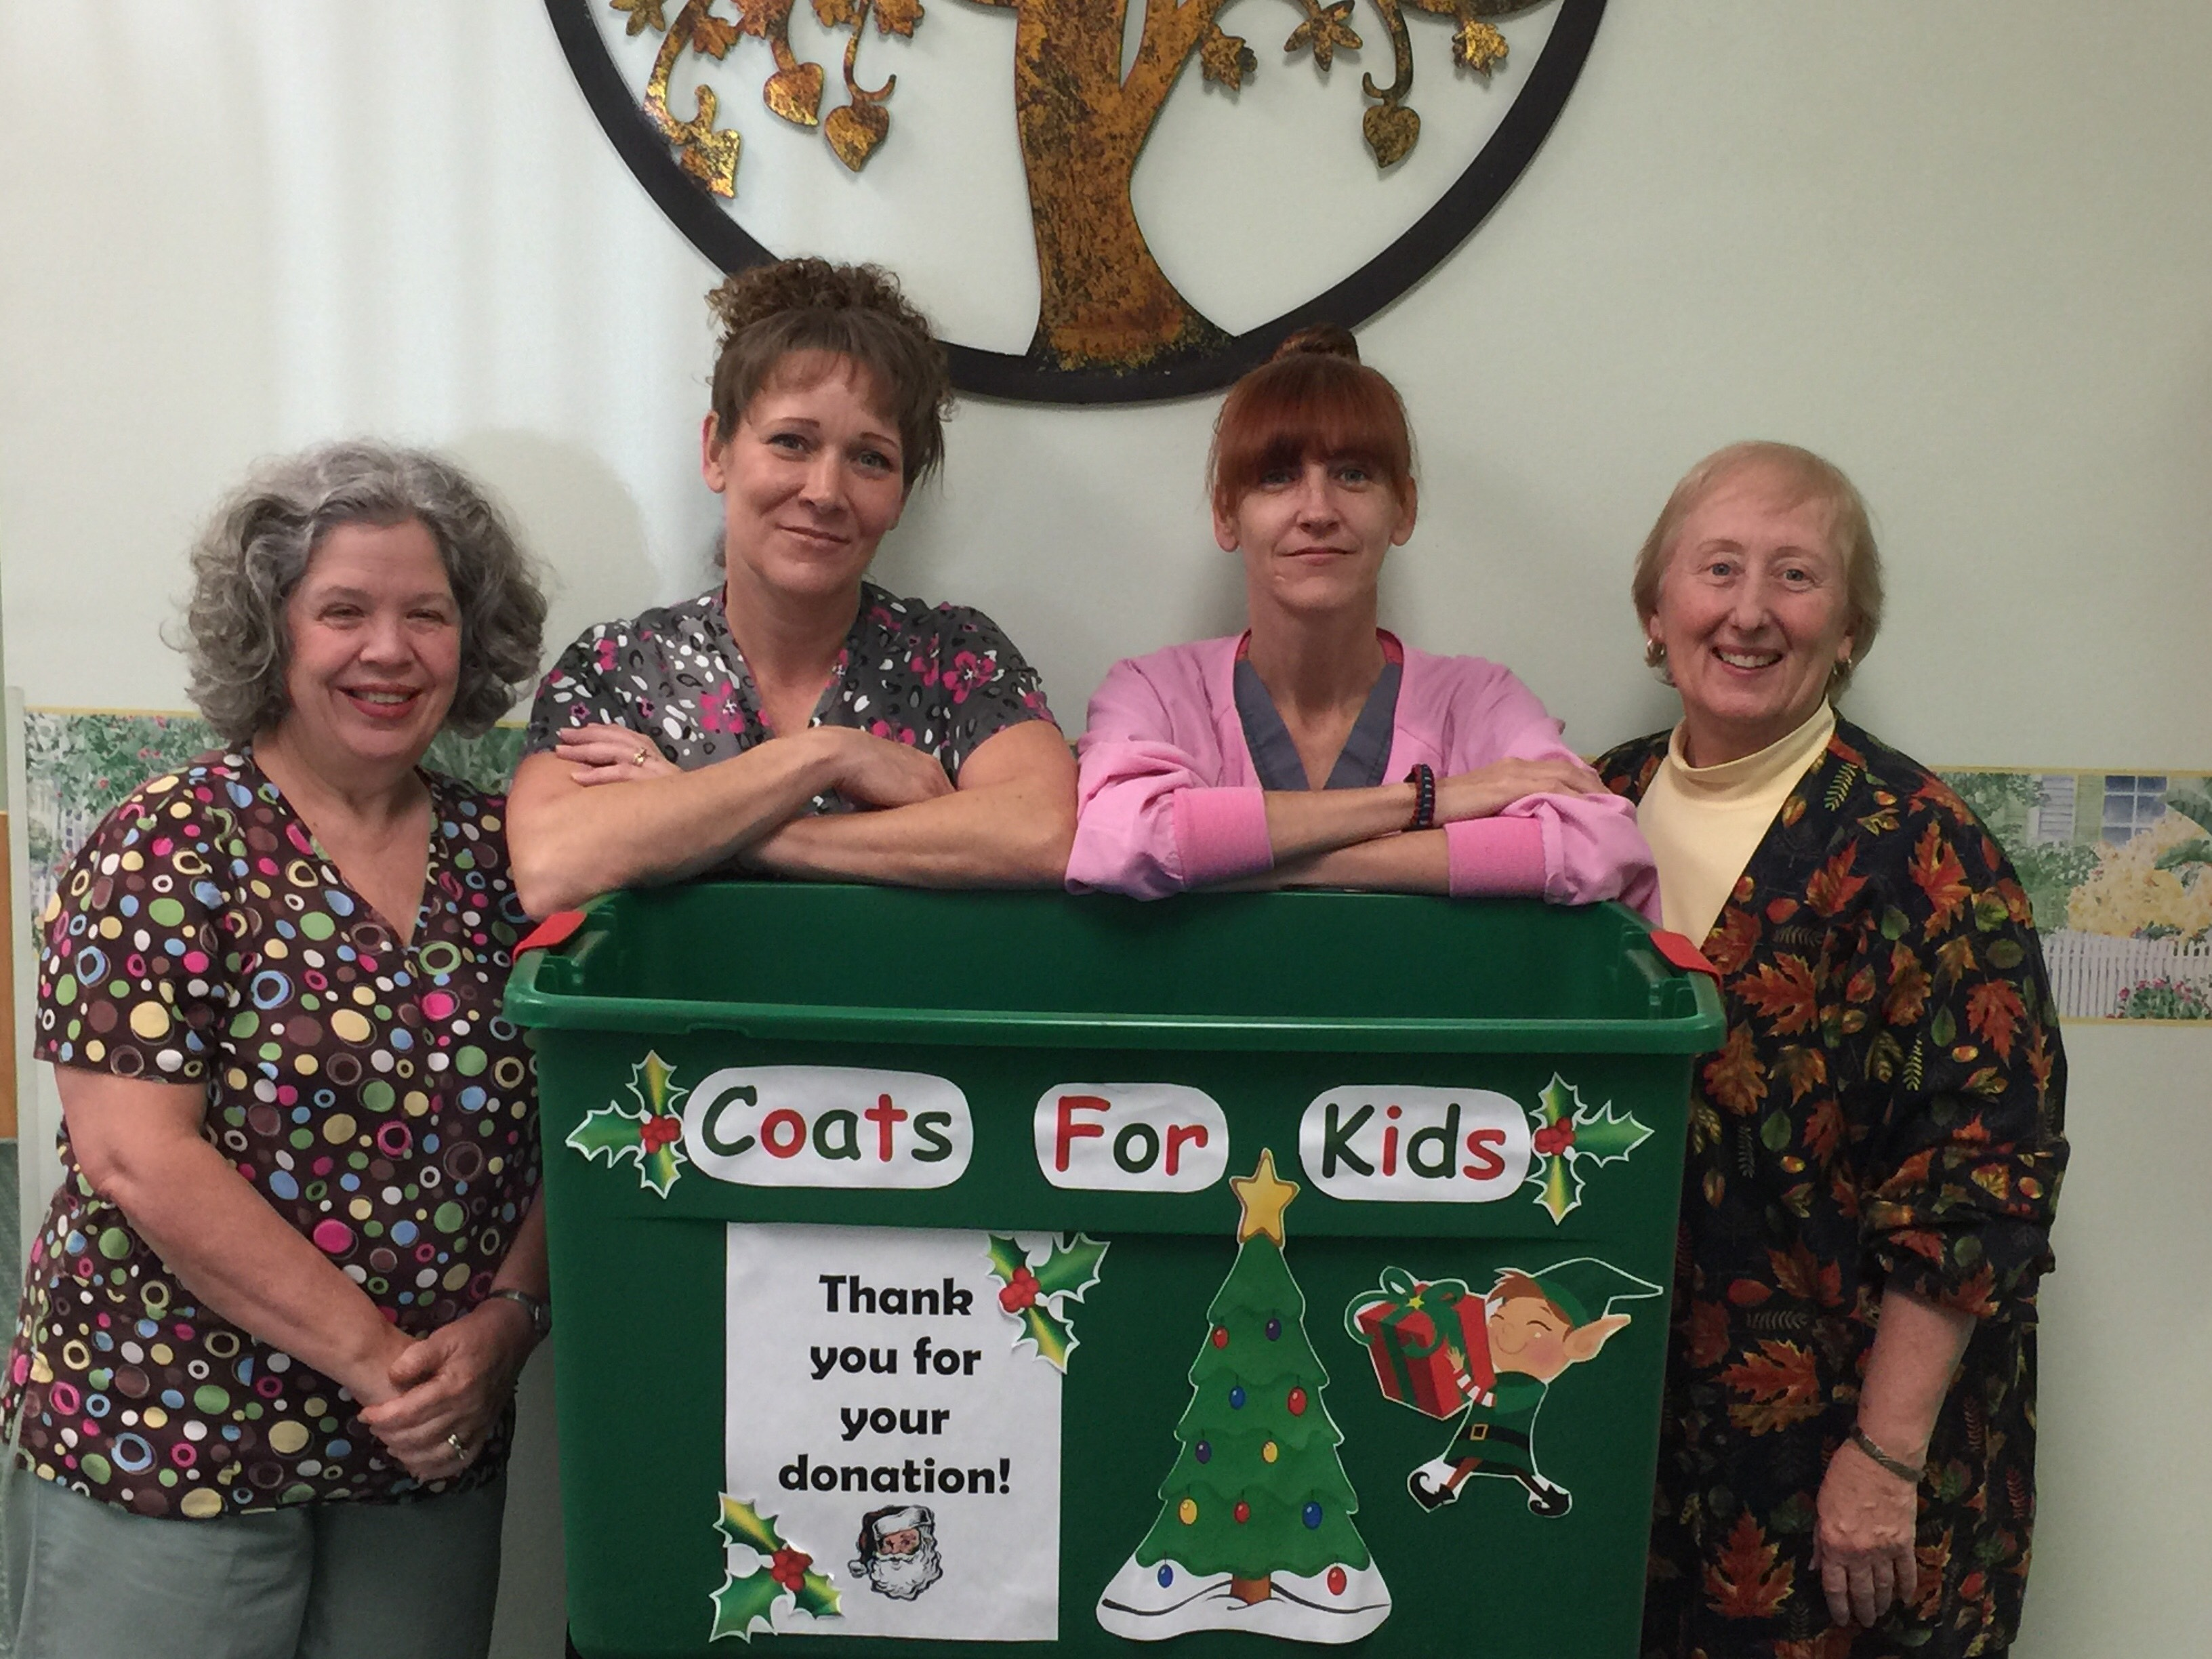 Coats for kids staff photo